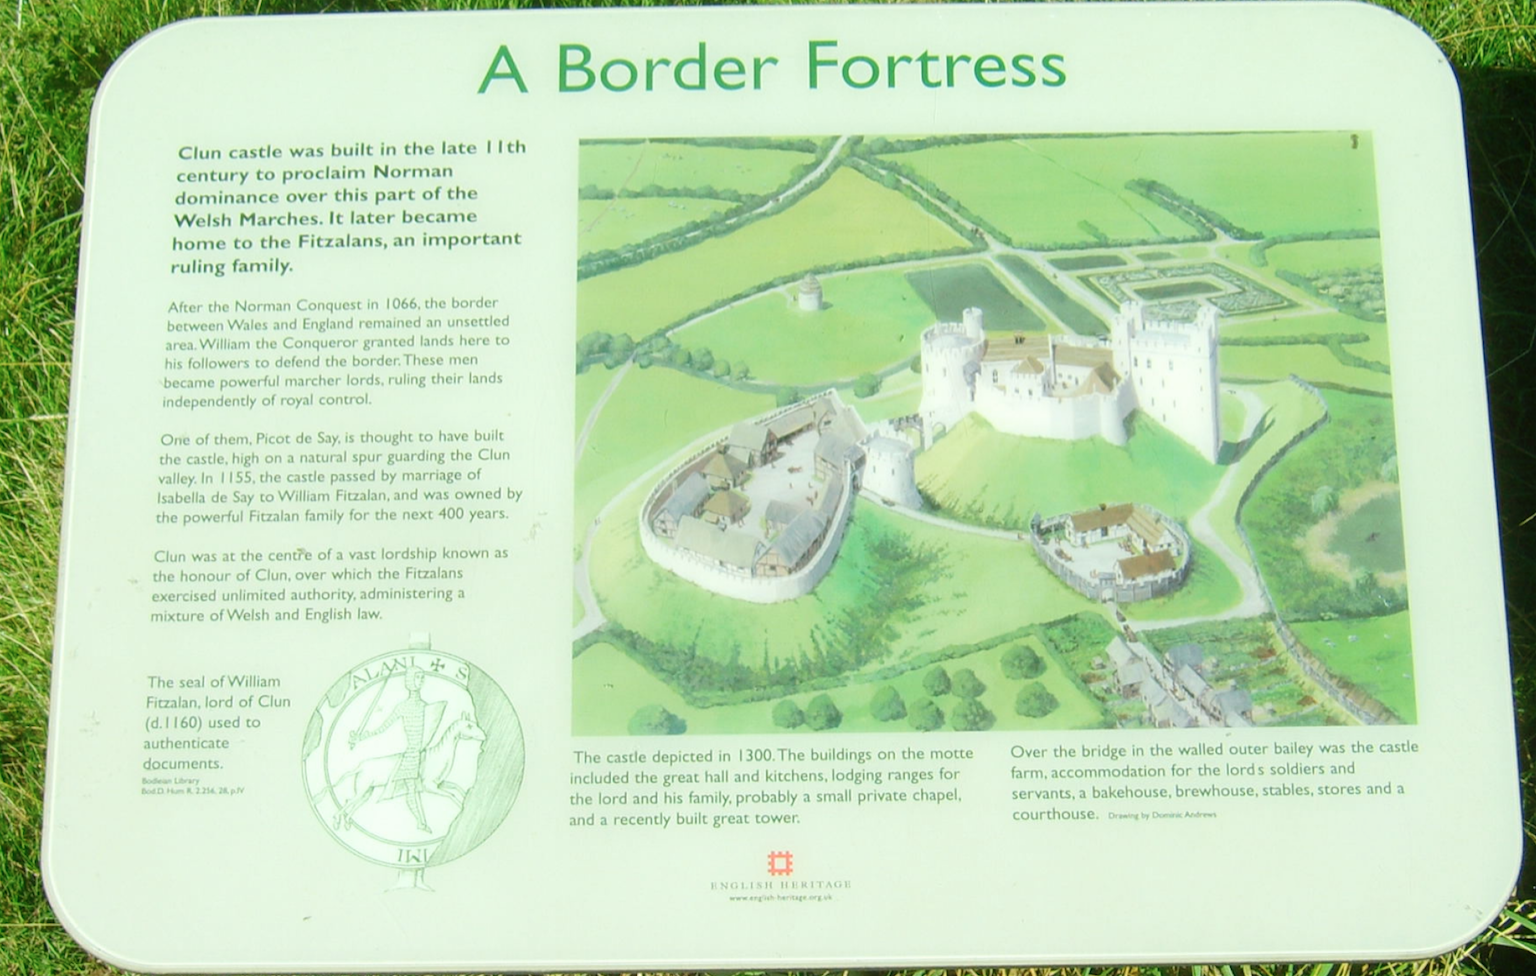 Clun Castle Information - A Border Fortress